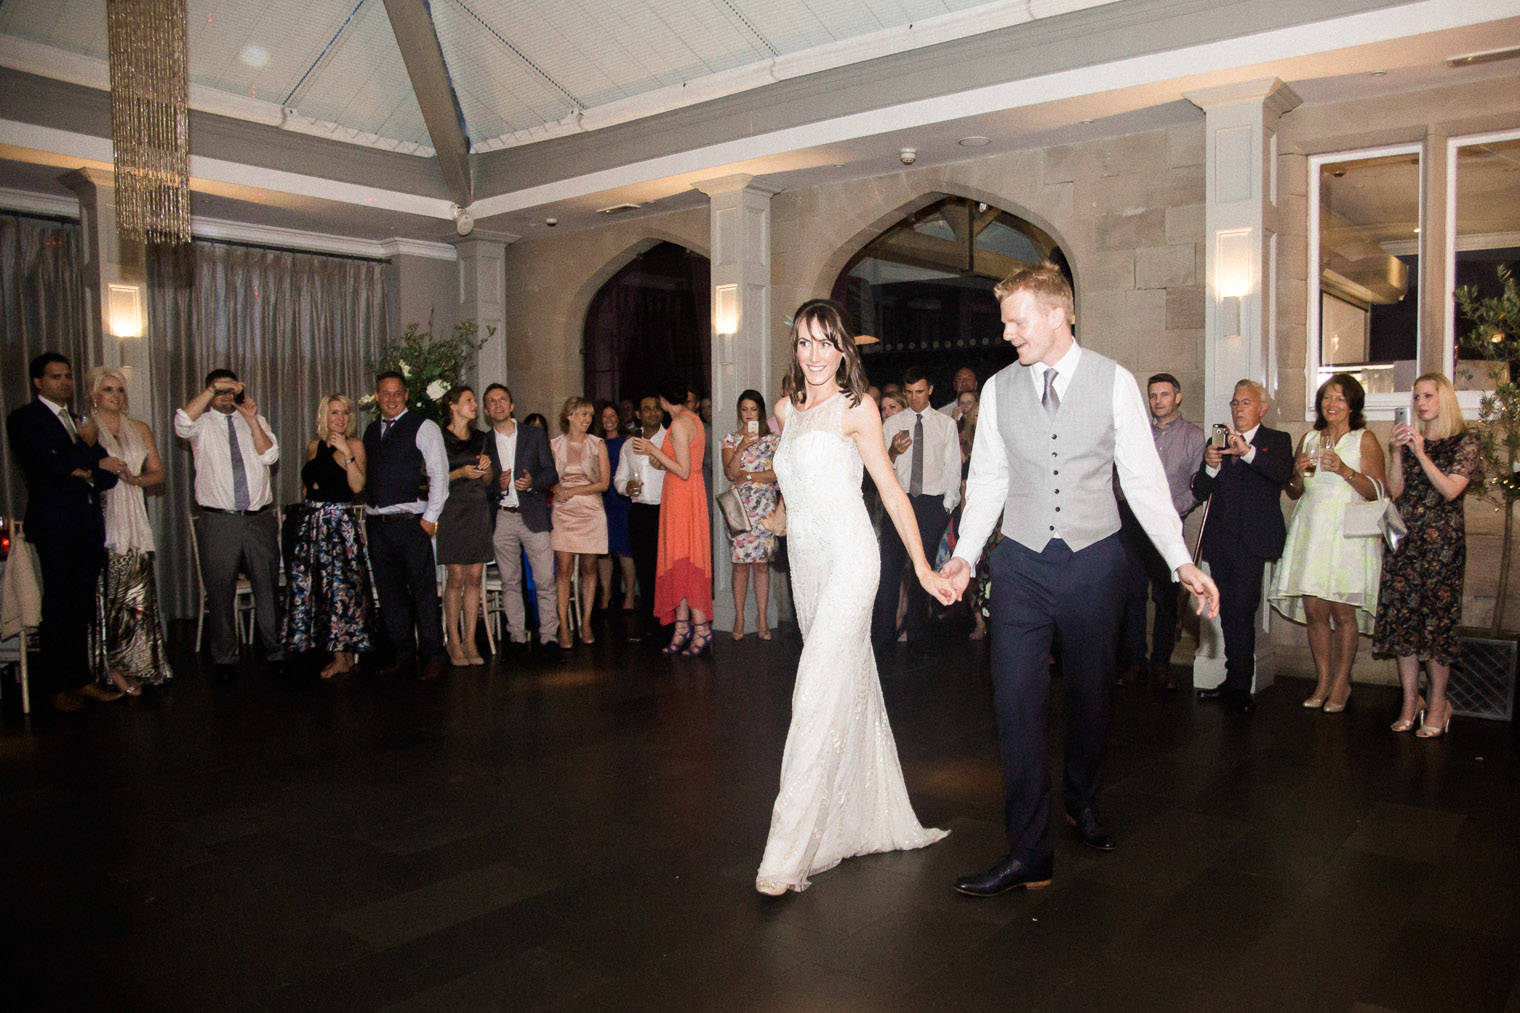 lifestyle-blogger-claire-wainwright-of-the-green-eyed-girl-shares-her-wedding-67